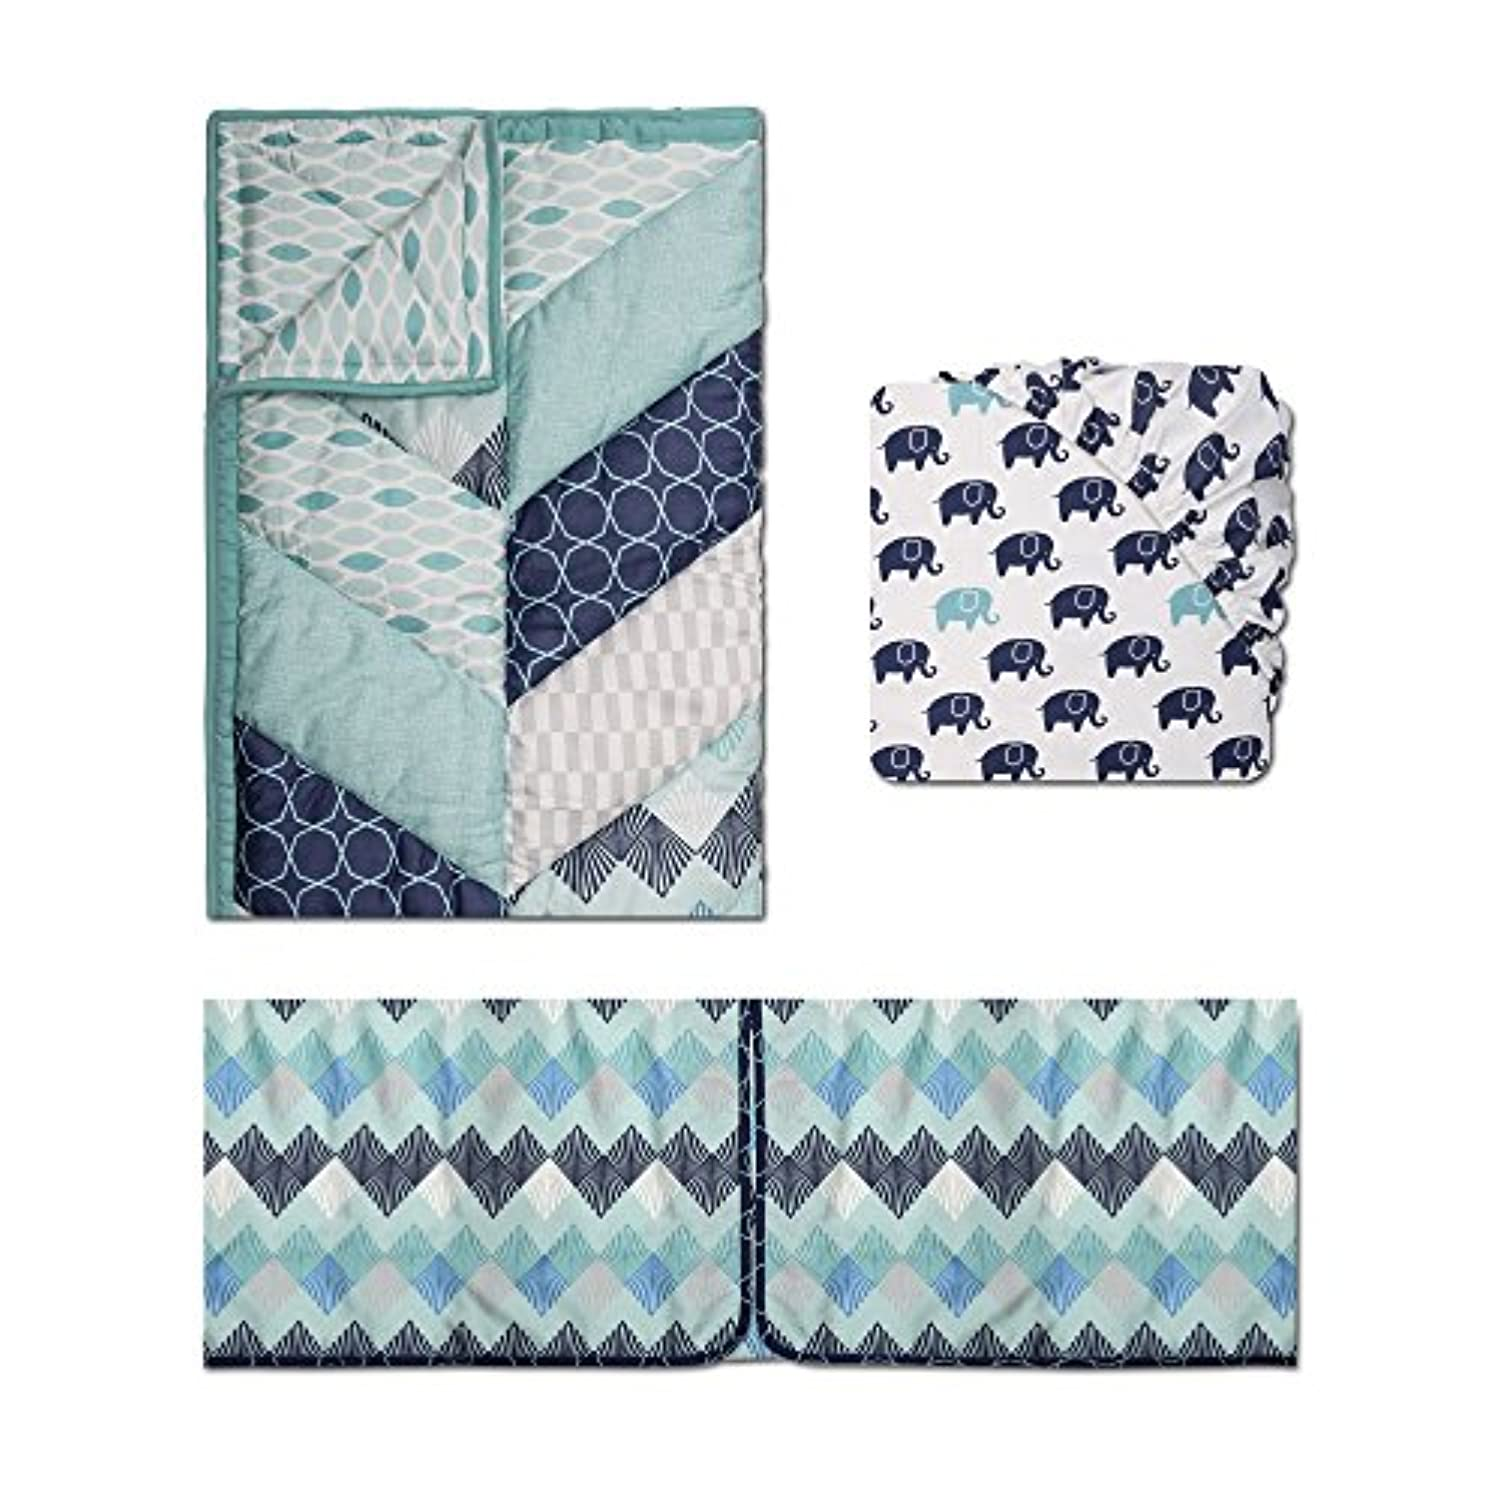 Mosaic 3 Piece Baby Crib Bedding Set by The Peanut Shell by The Peanut Shell